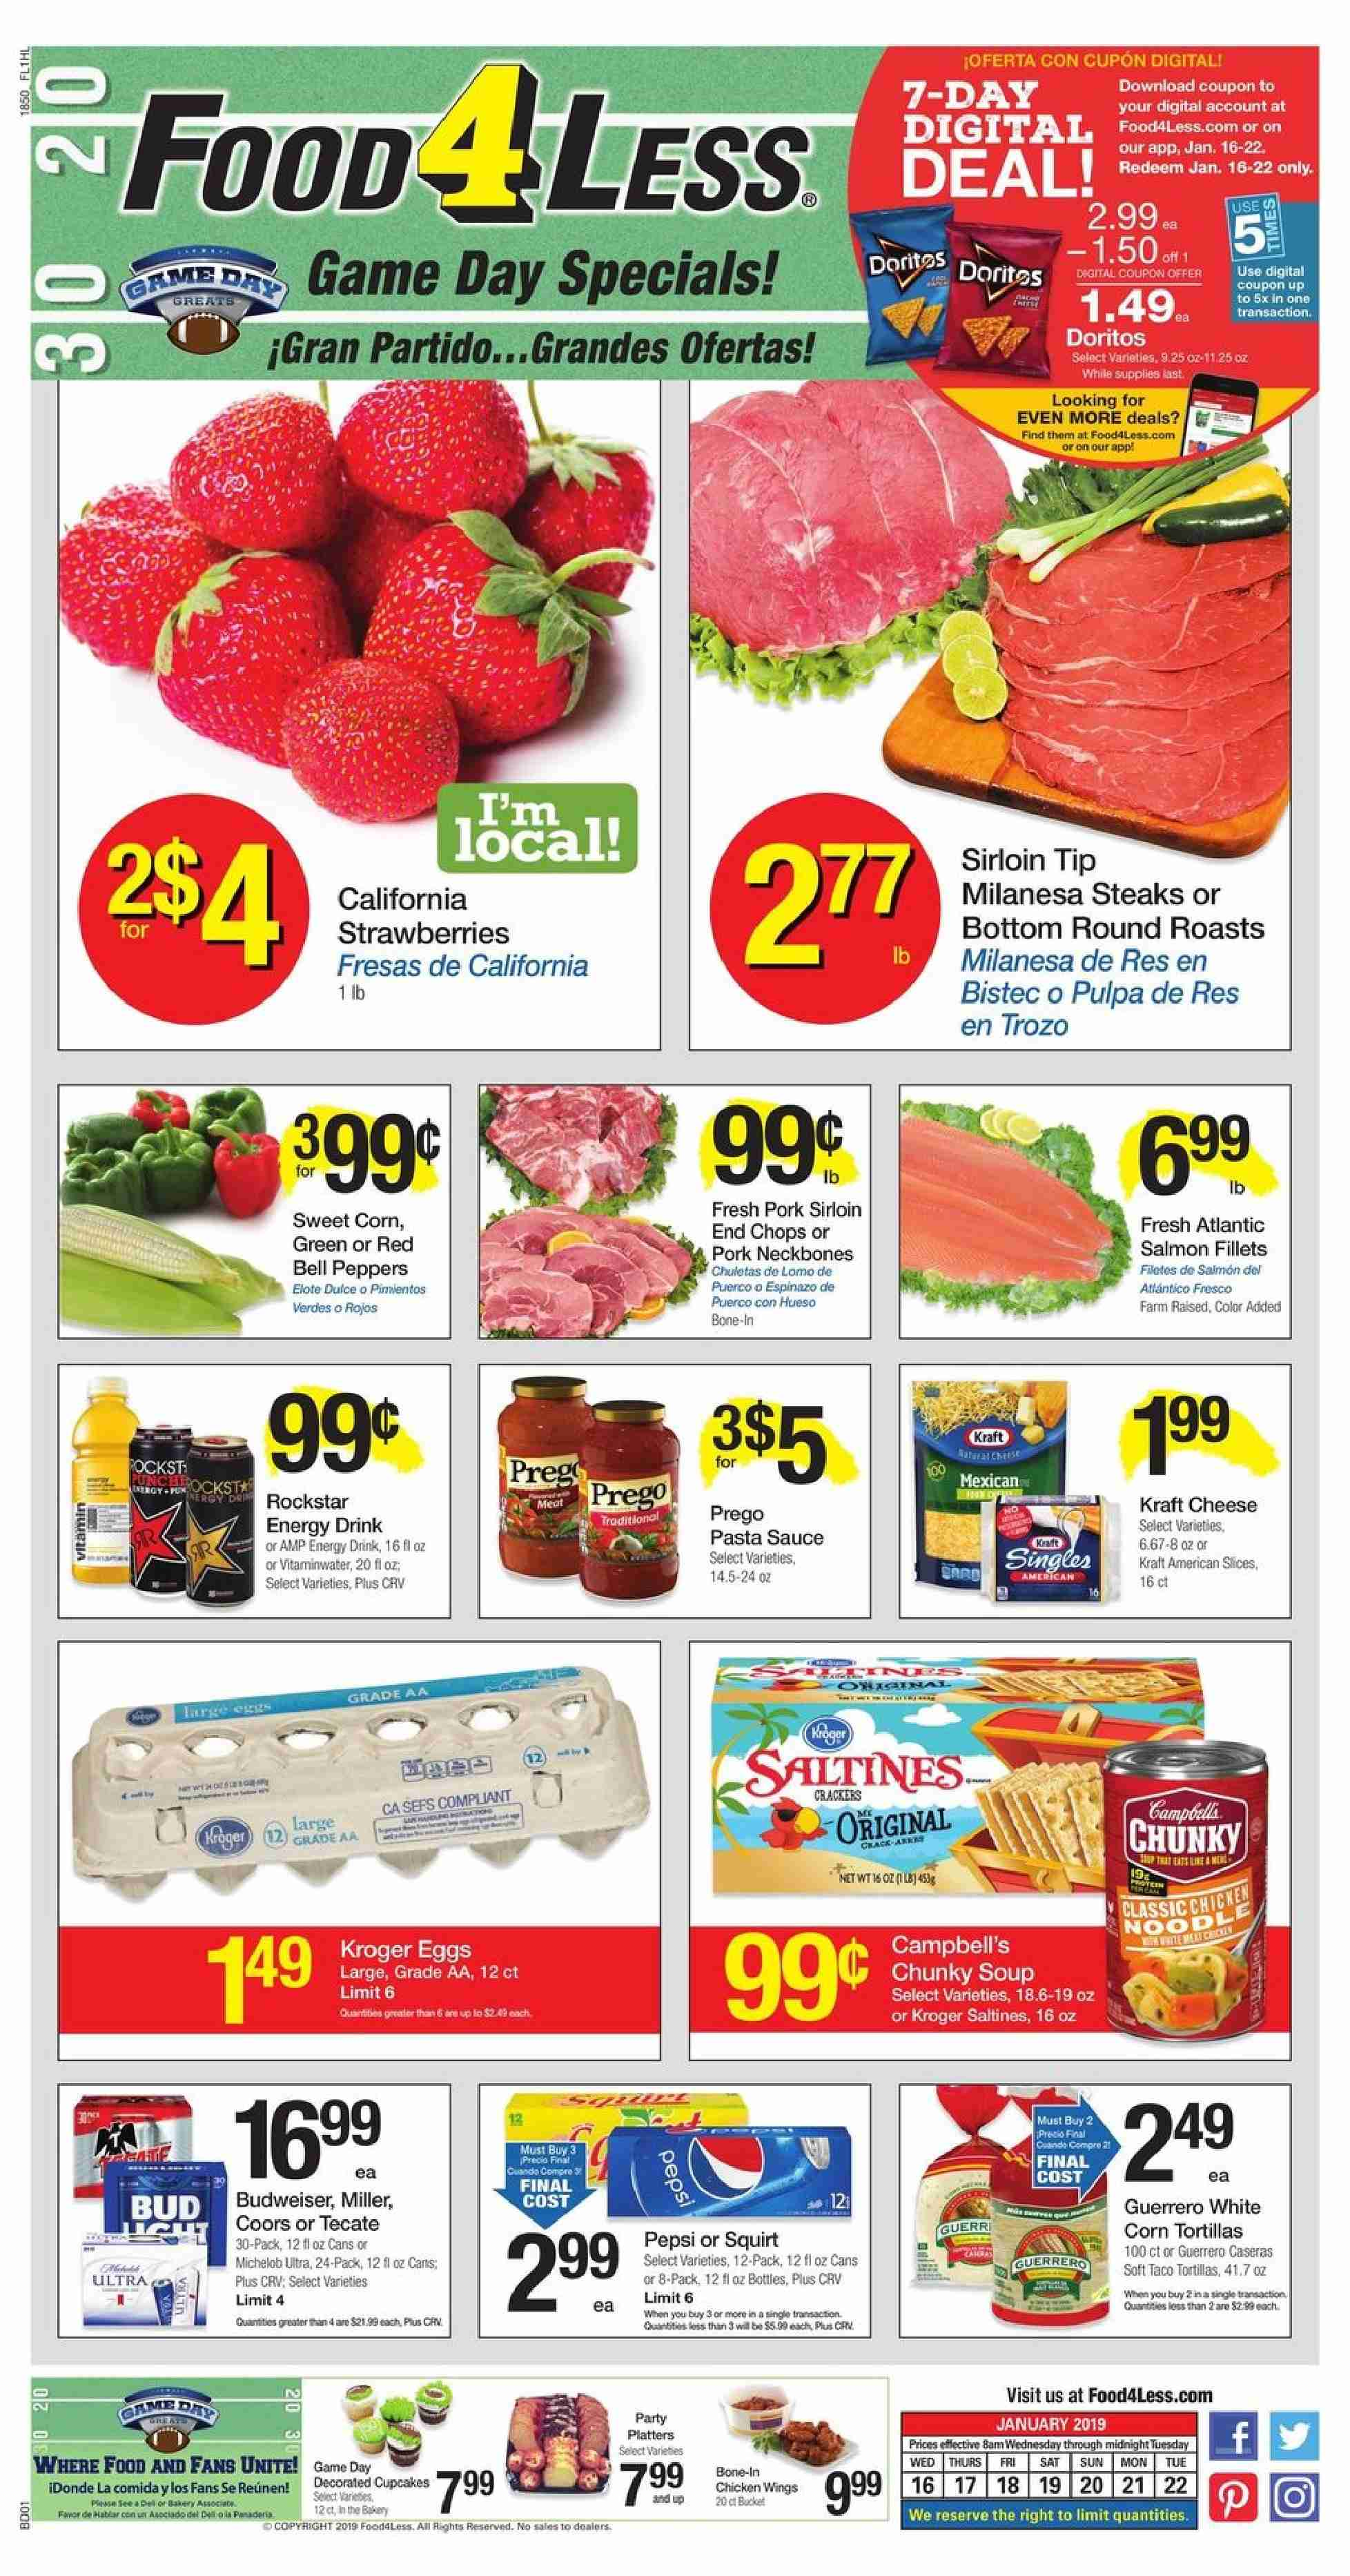 Food 4 Less Flyer  - 01.16.2019 - 01.22.2019. Page 1.